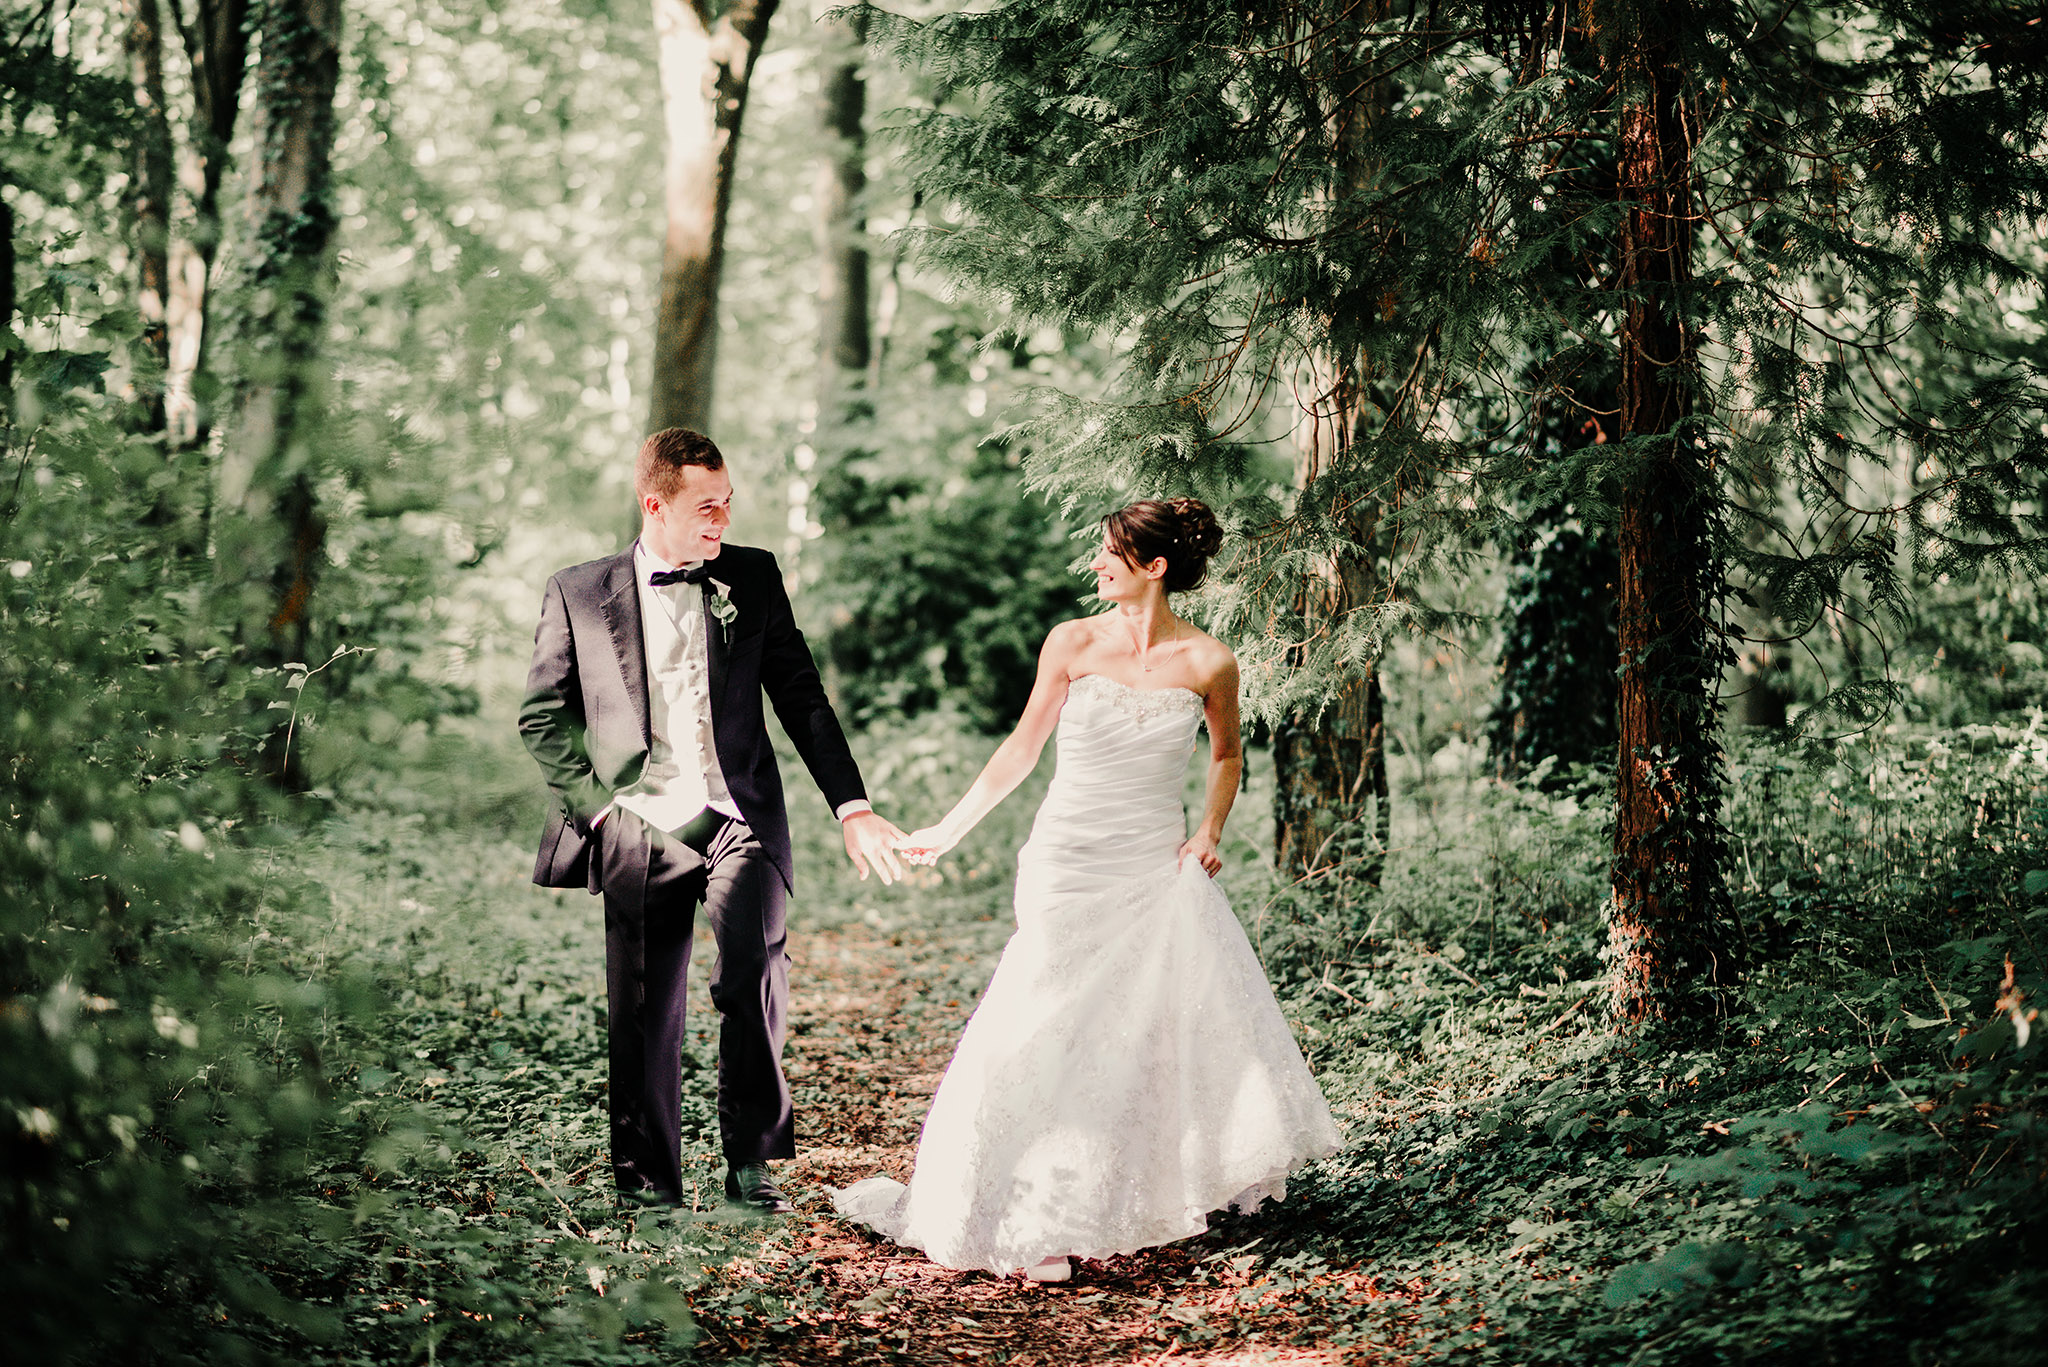 carlie-josh-woodland-Scott-stockwell-photography-wedding-photographer-malvern-worcestershire.jpg